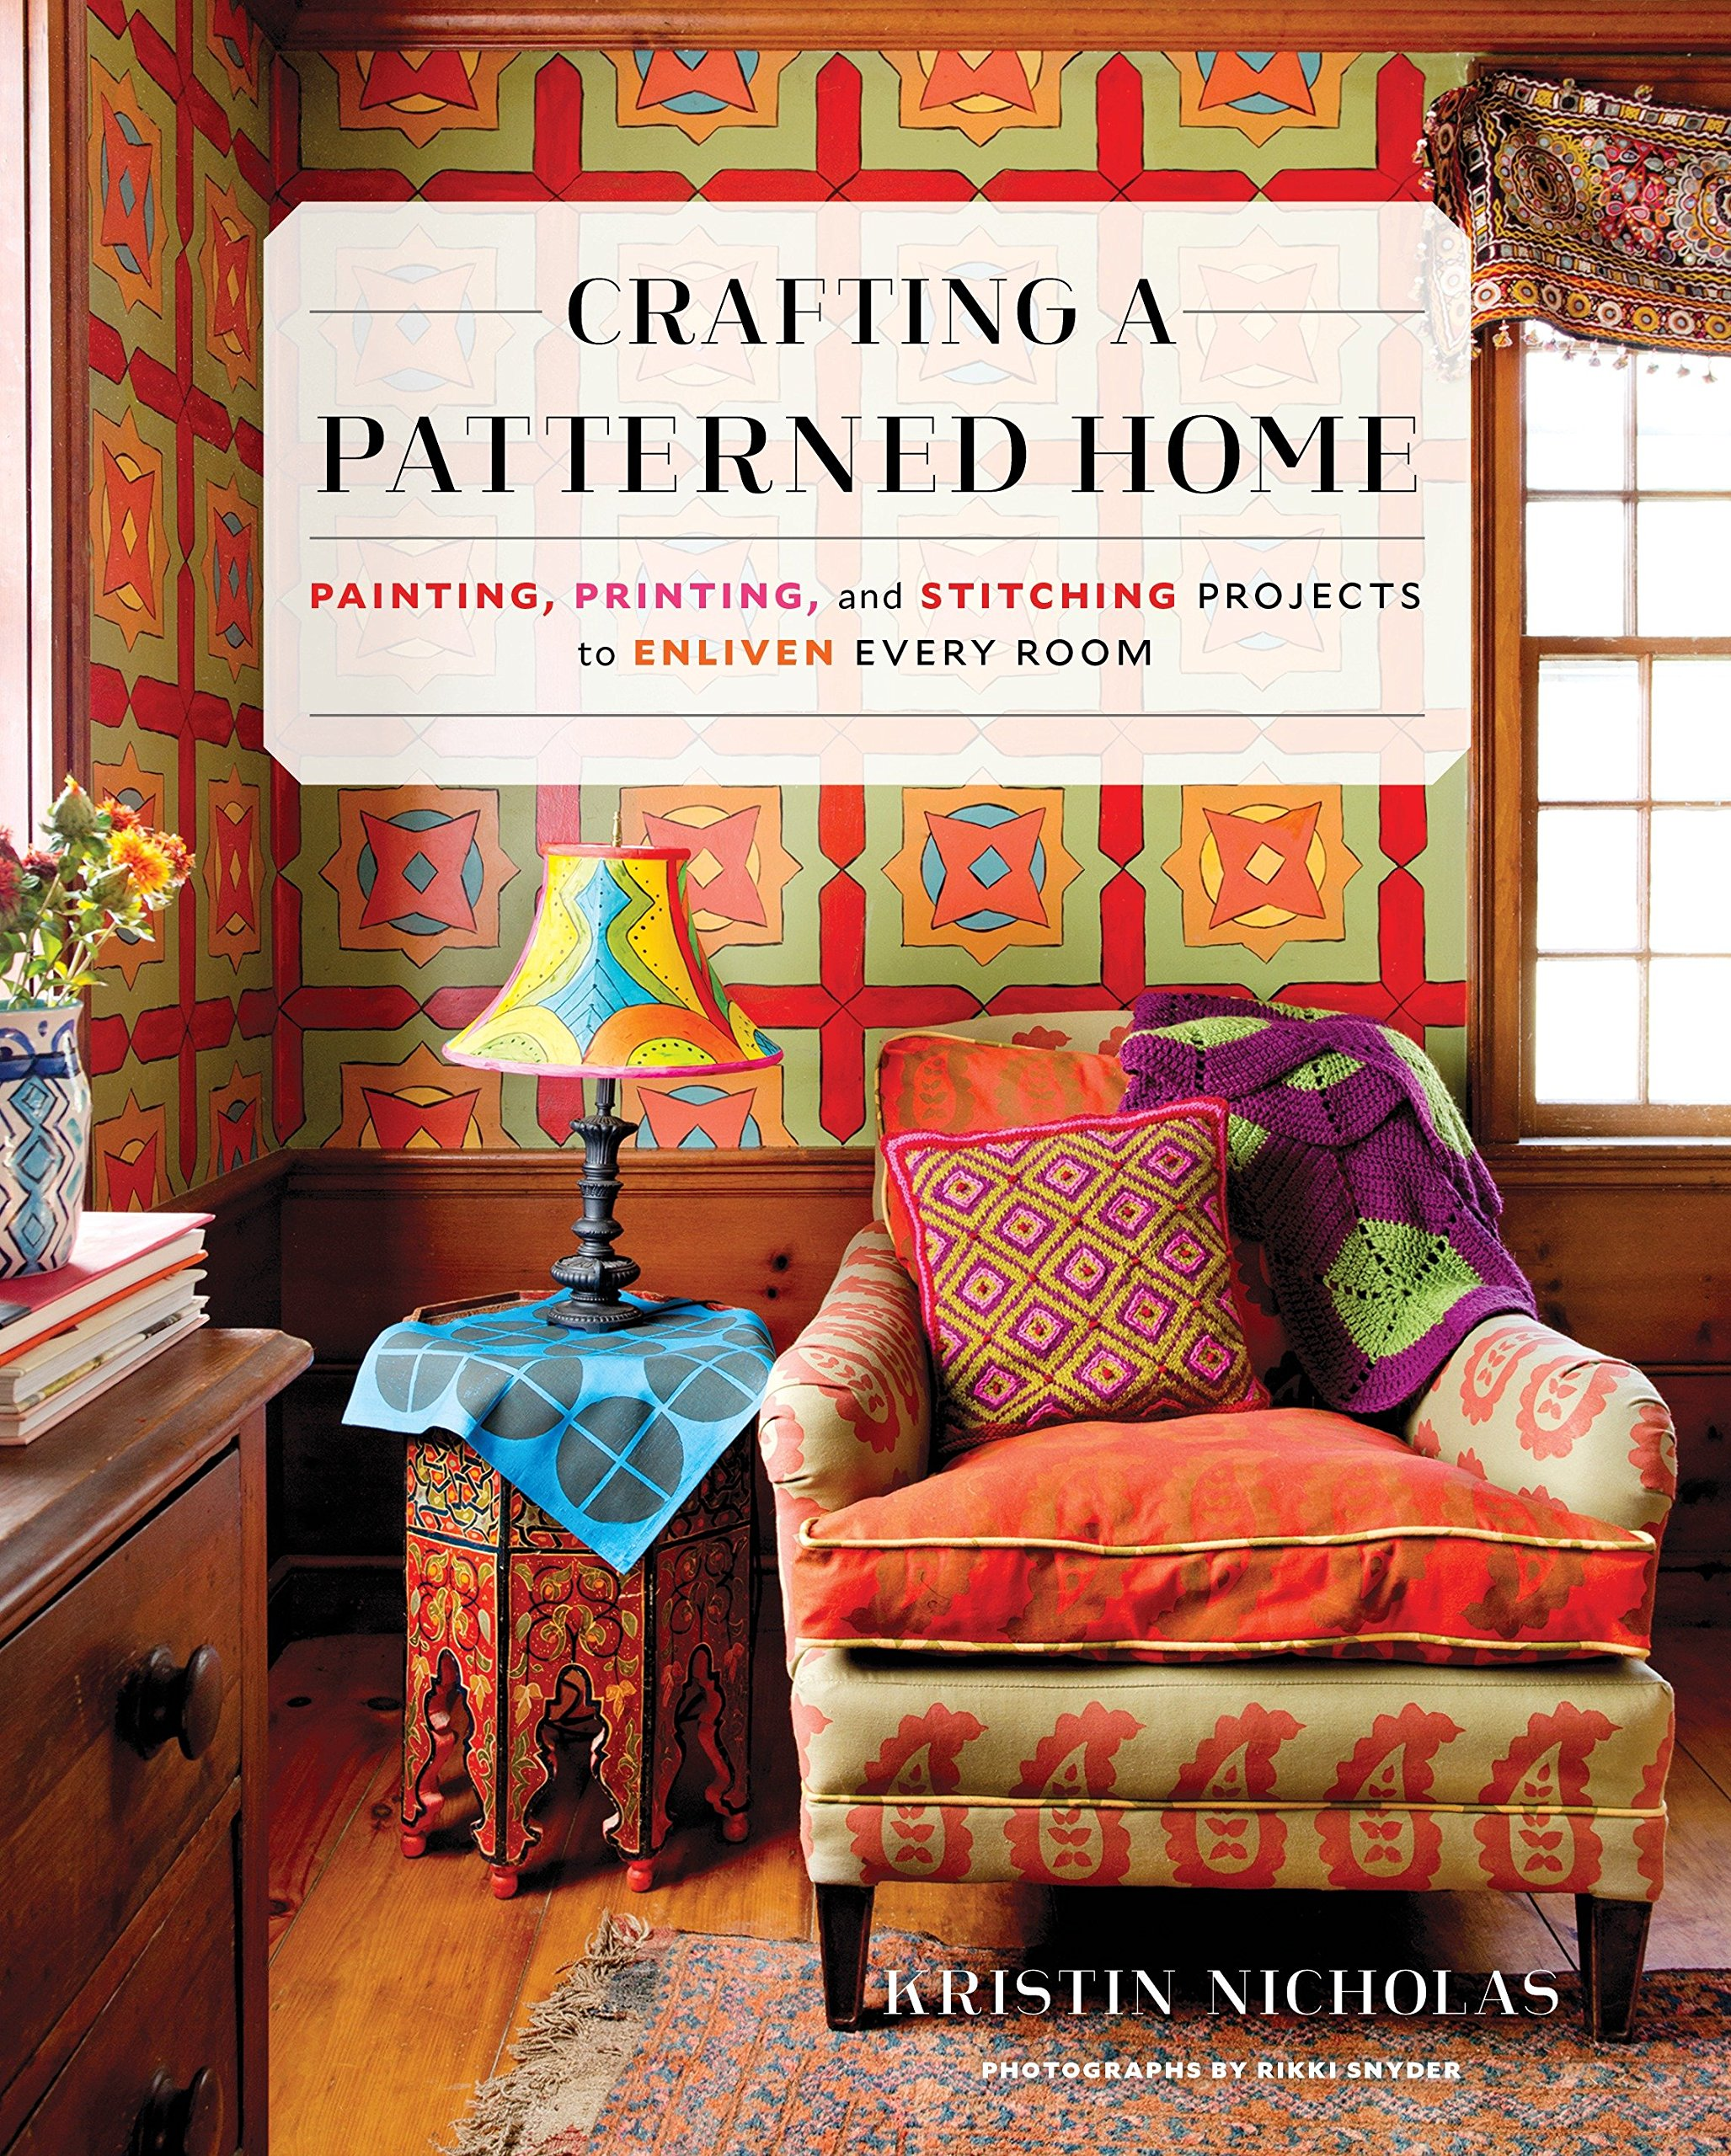 Download Crafting a Patterned Home: Painting, Printing, and Stitching Projects to Enliven Every Room pdf